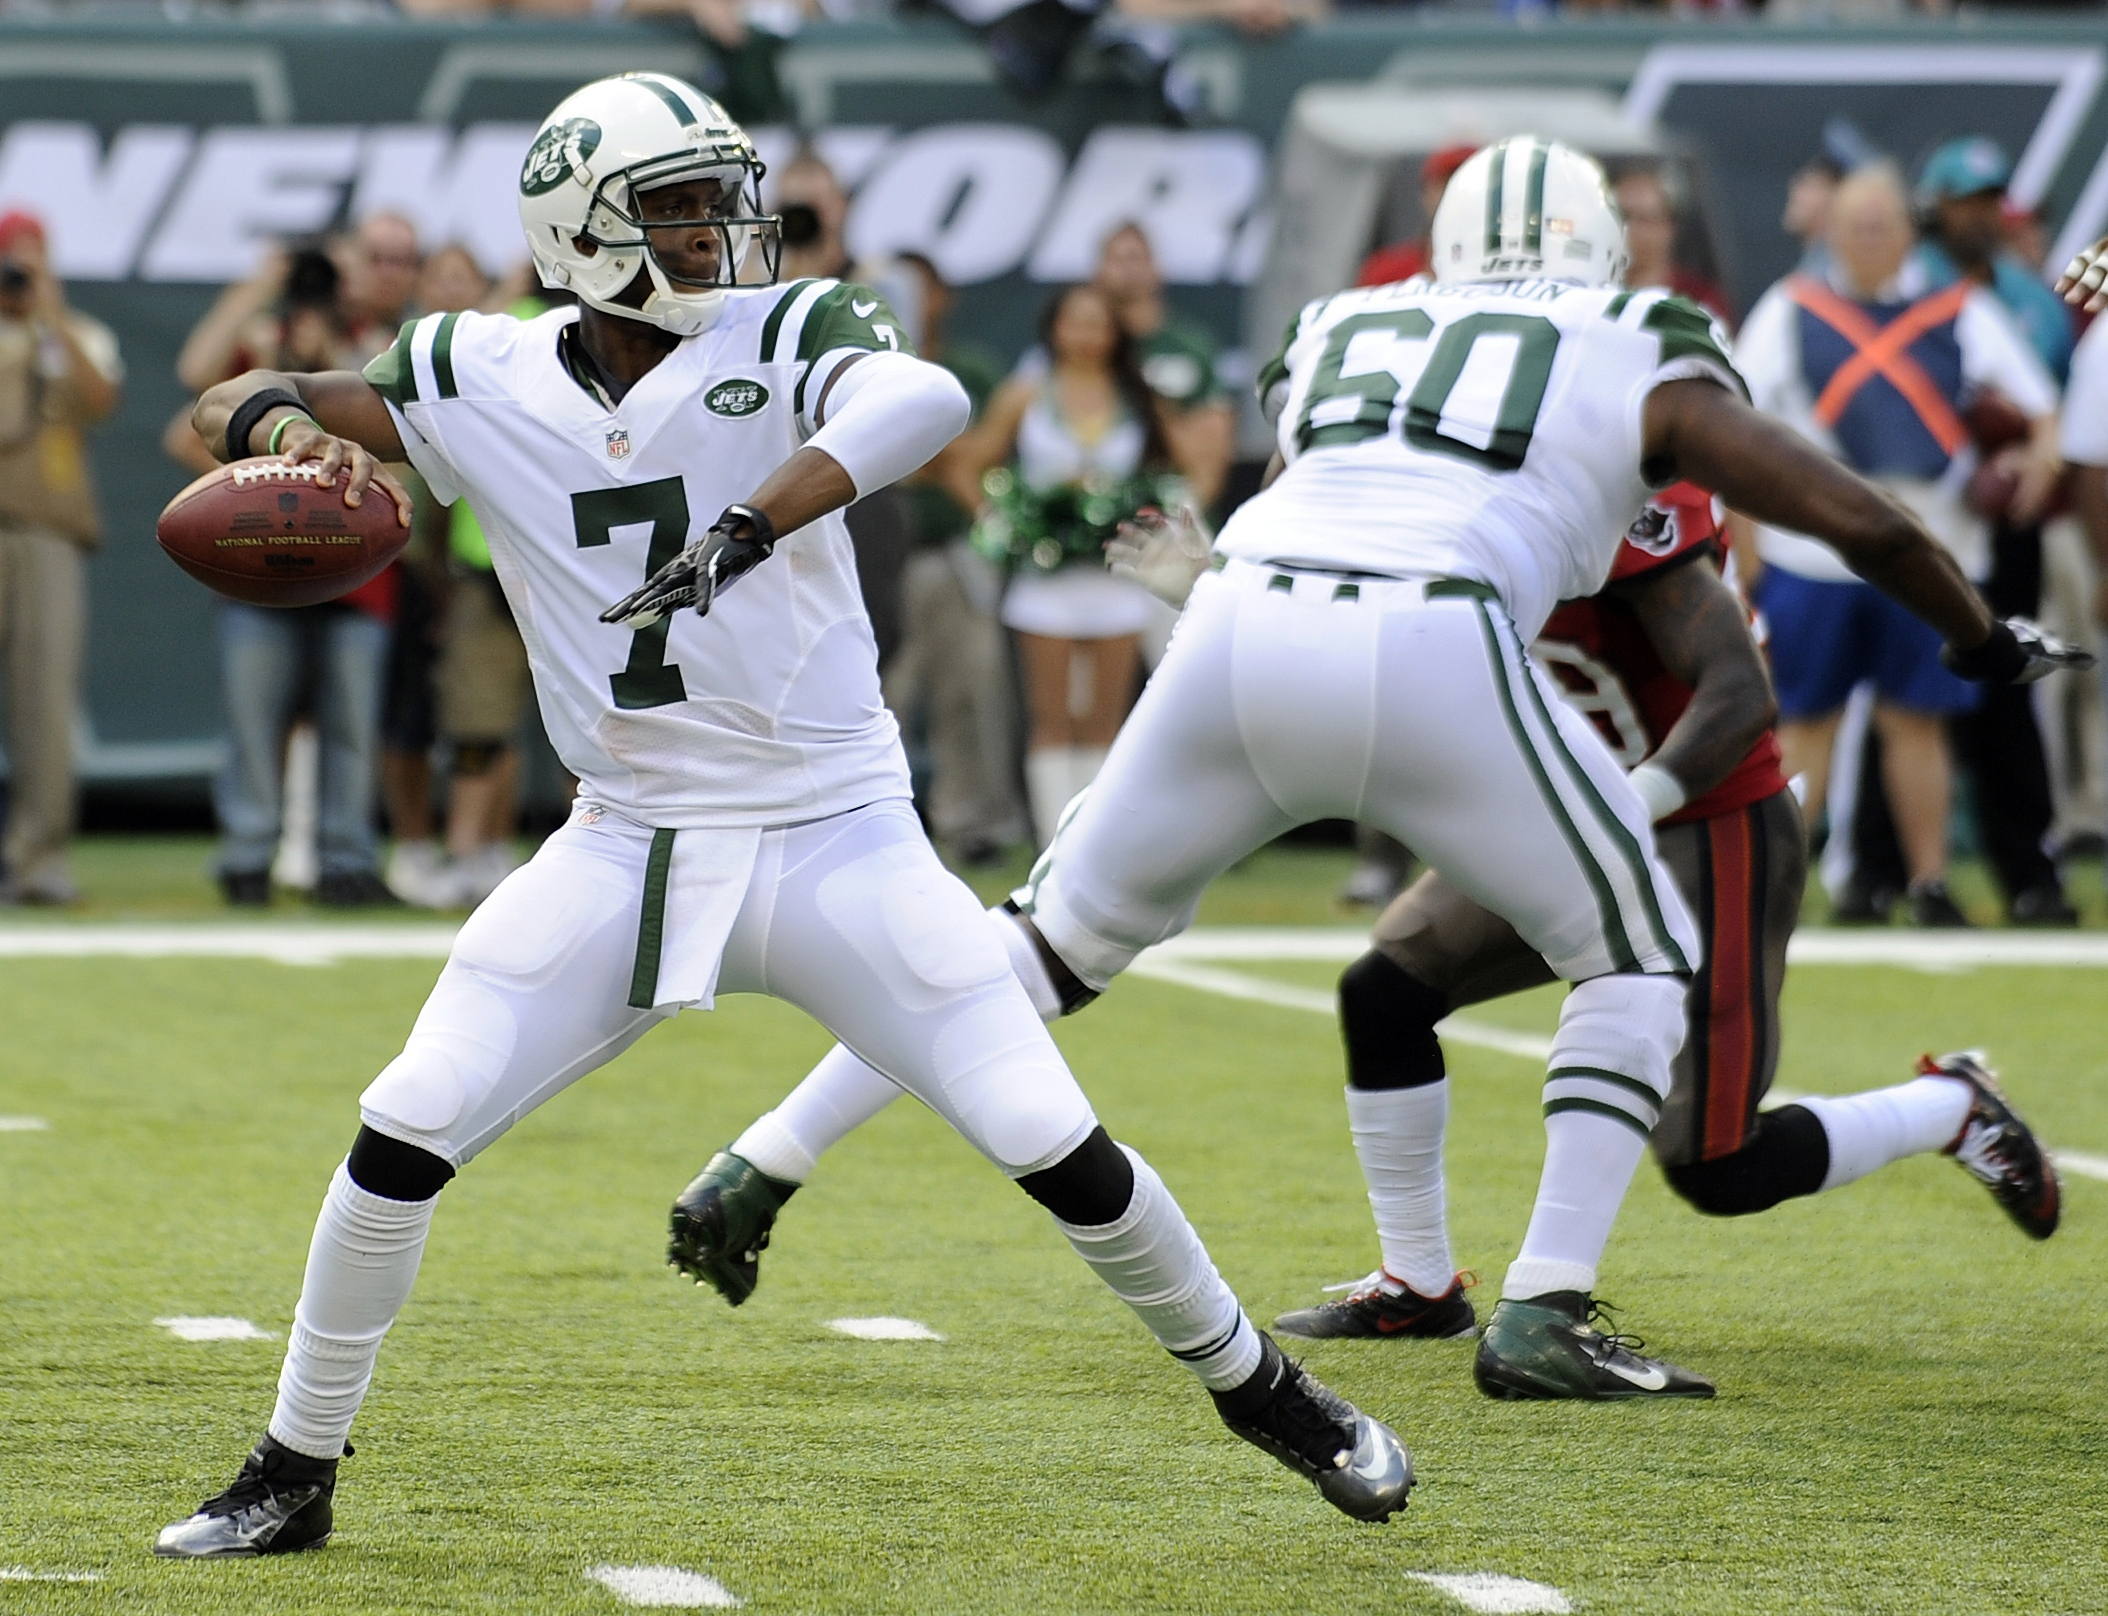 Jets rookie quarterback Geno Smith struggled against the Patriots when facing a four-man rush during last week's loss. (Associated Press)